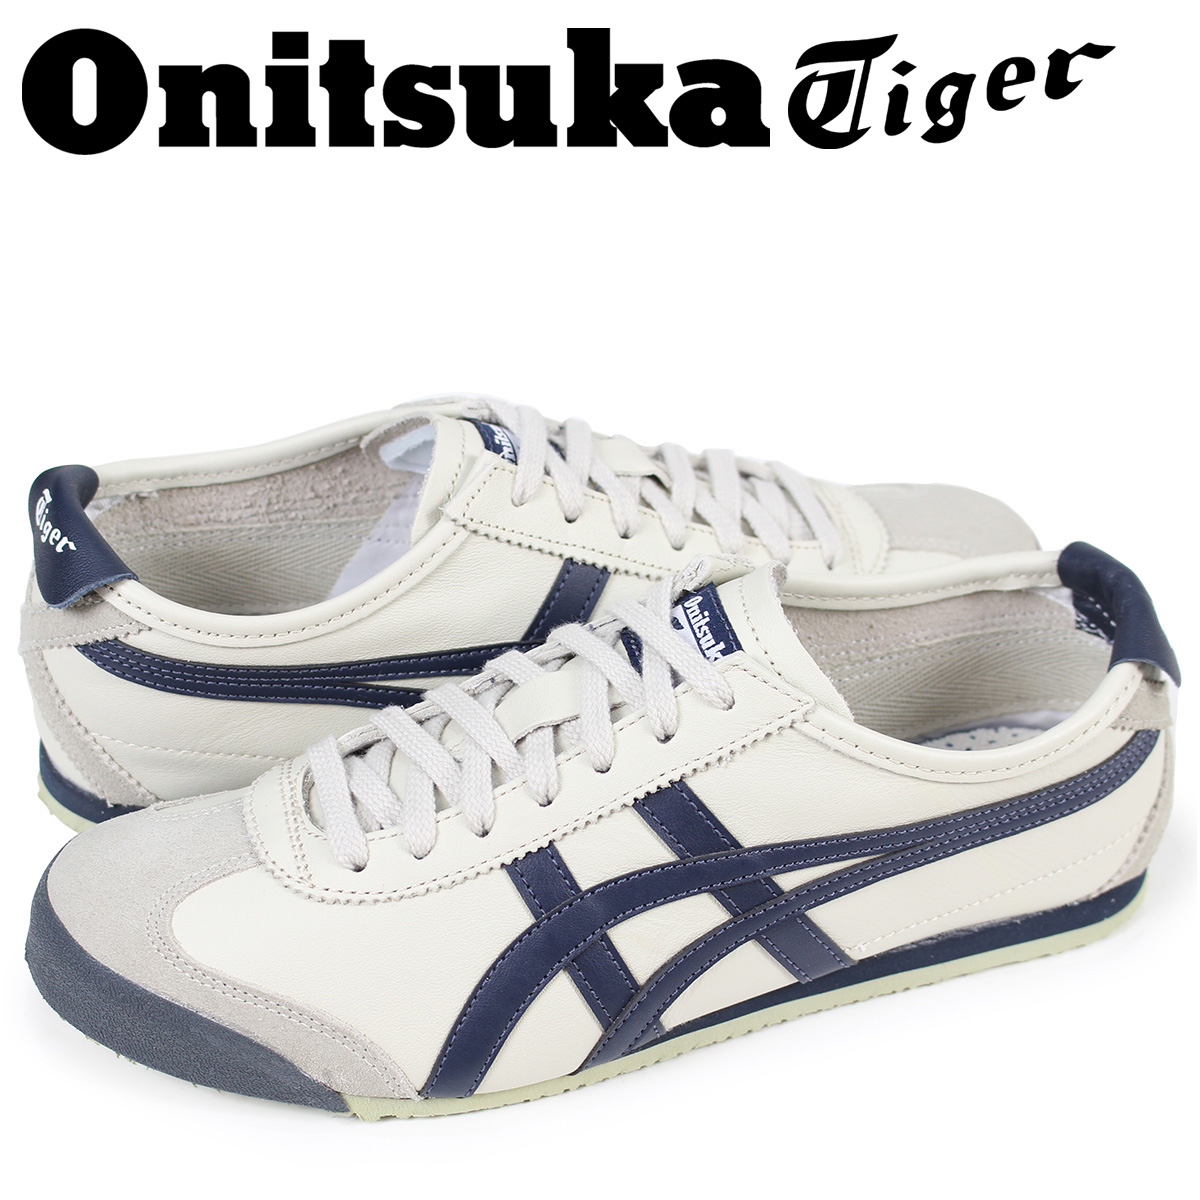 ASICS Onitsuka Tiger asics MEXICO 66 sneakers ONITSUKA Tiger Mexico 66  leather x suede mens Womens THL202-1659 Birch unisex regular